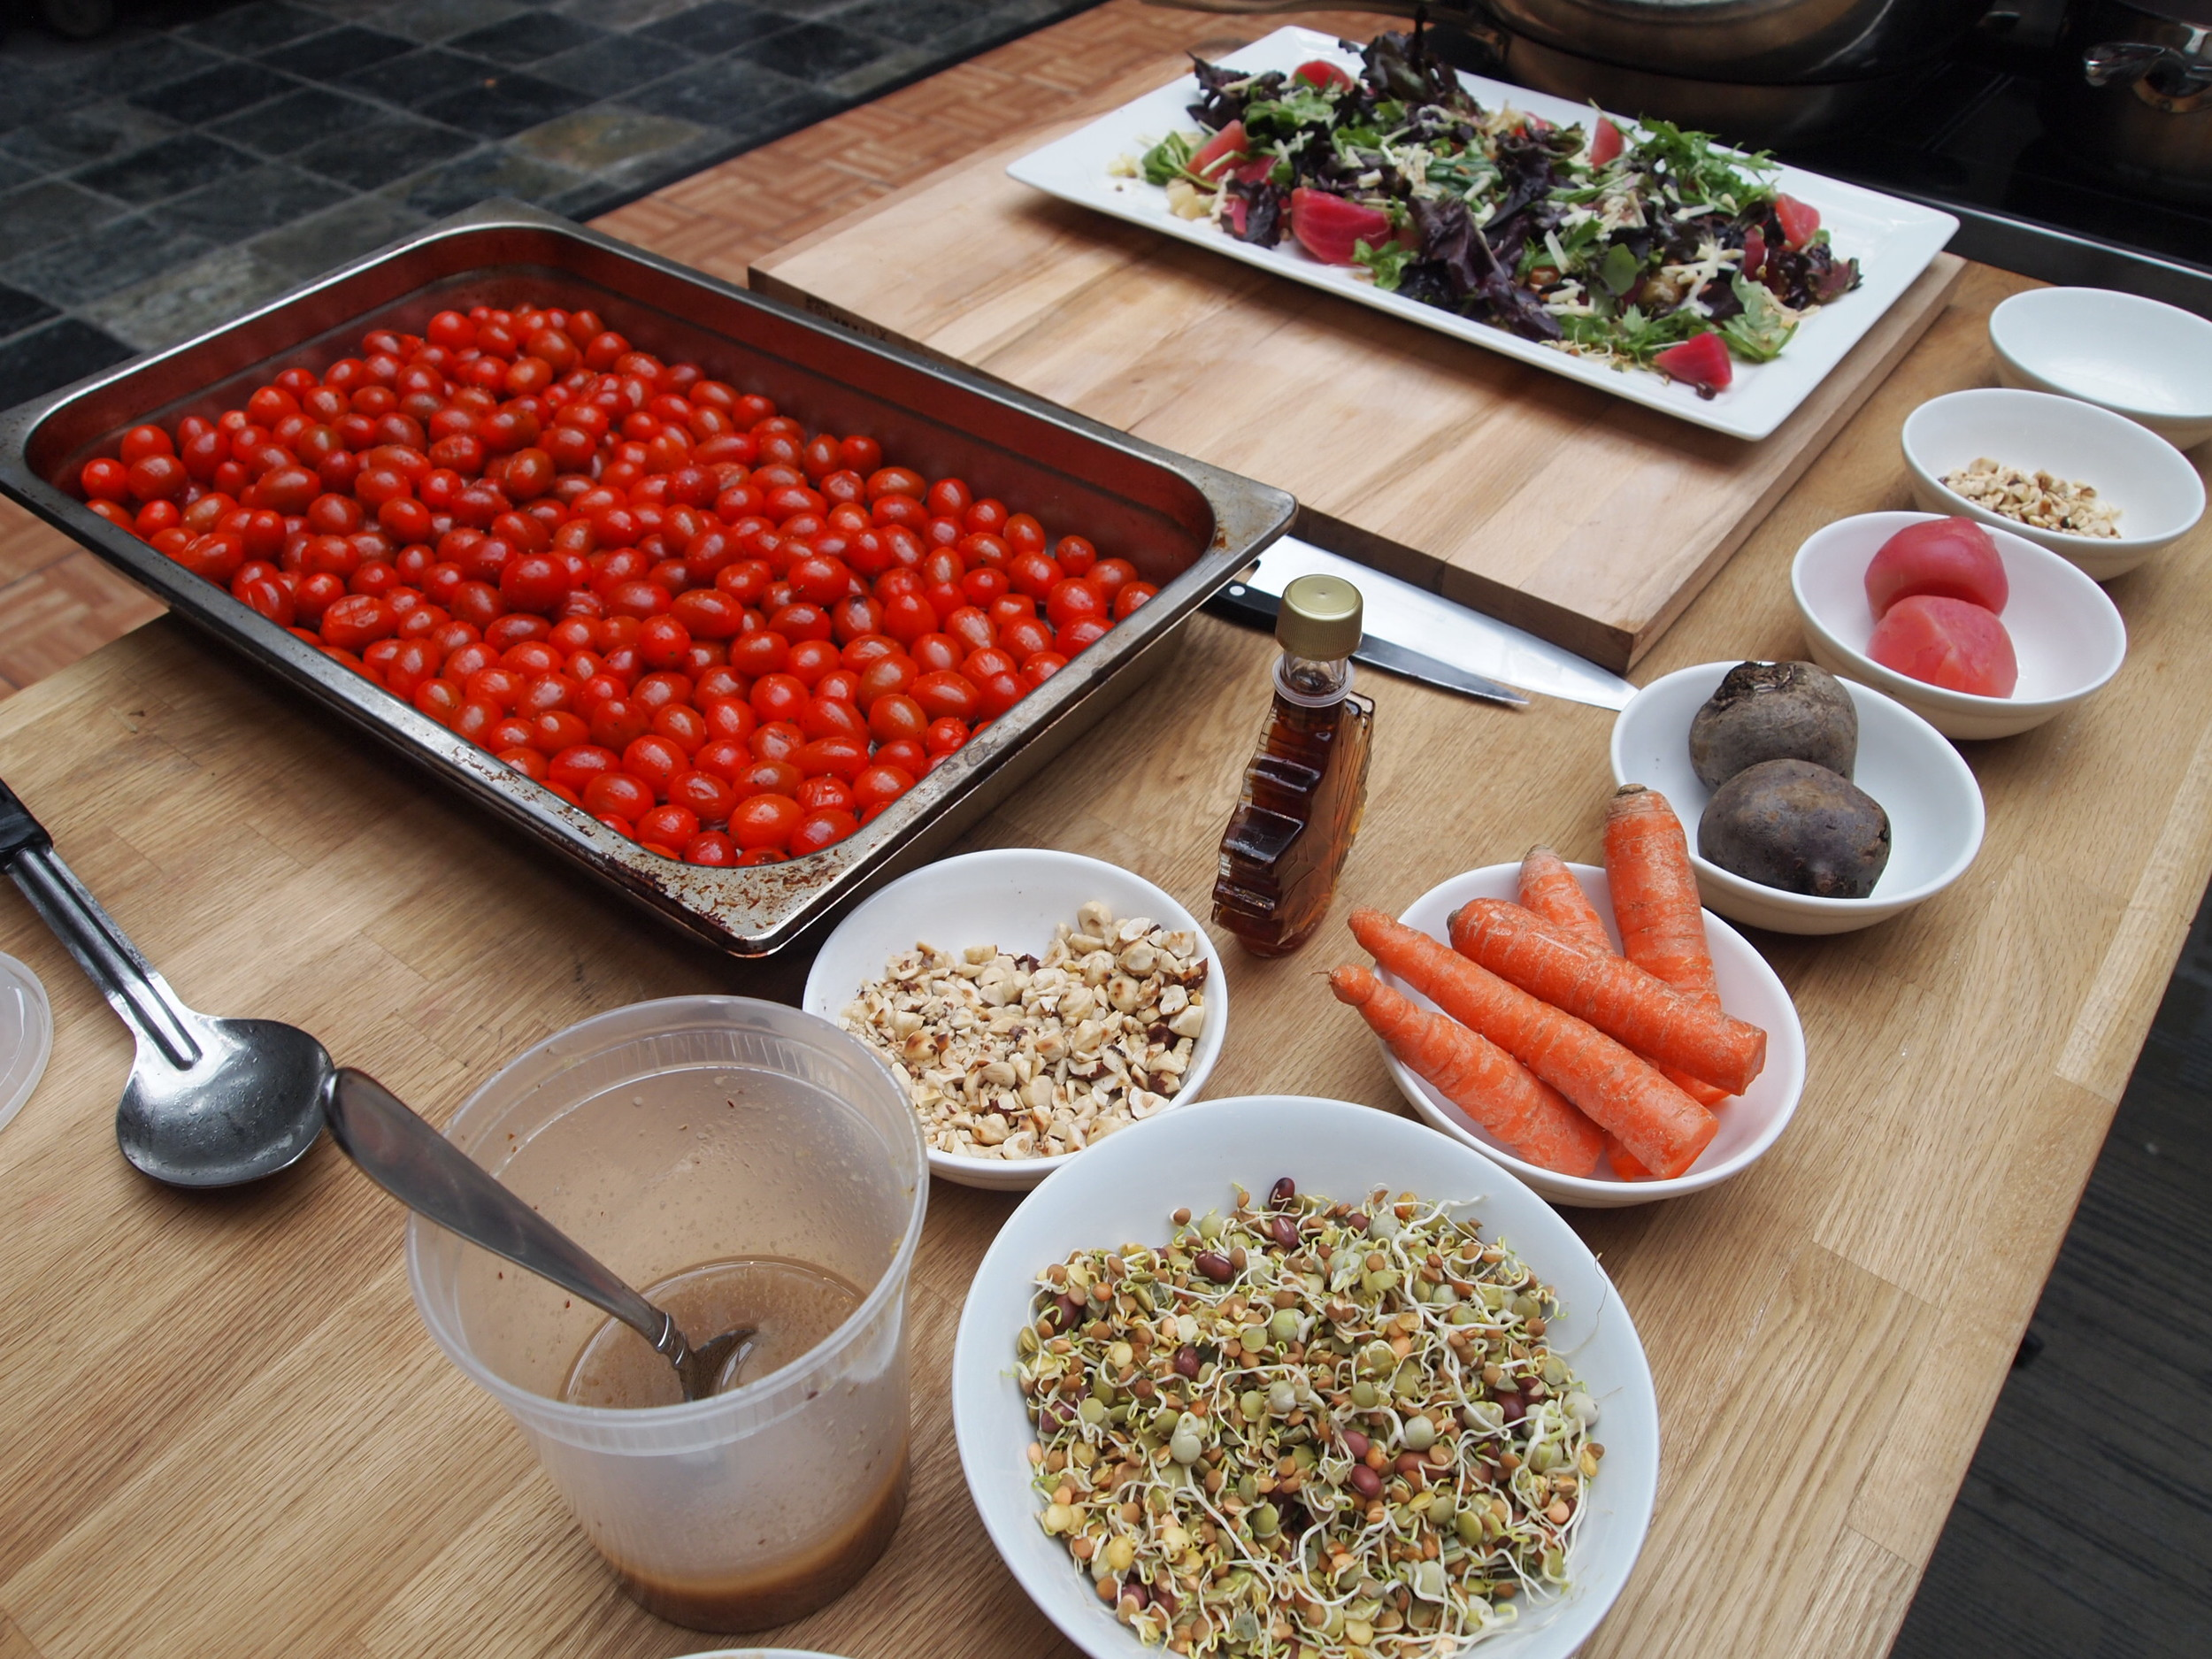 Culinary Stage Series:  Edible Canada  - Coast to Coast. Ingredients for the first course: Roasted carrot and beet salad.